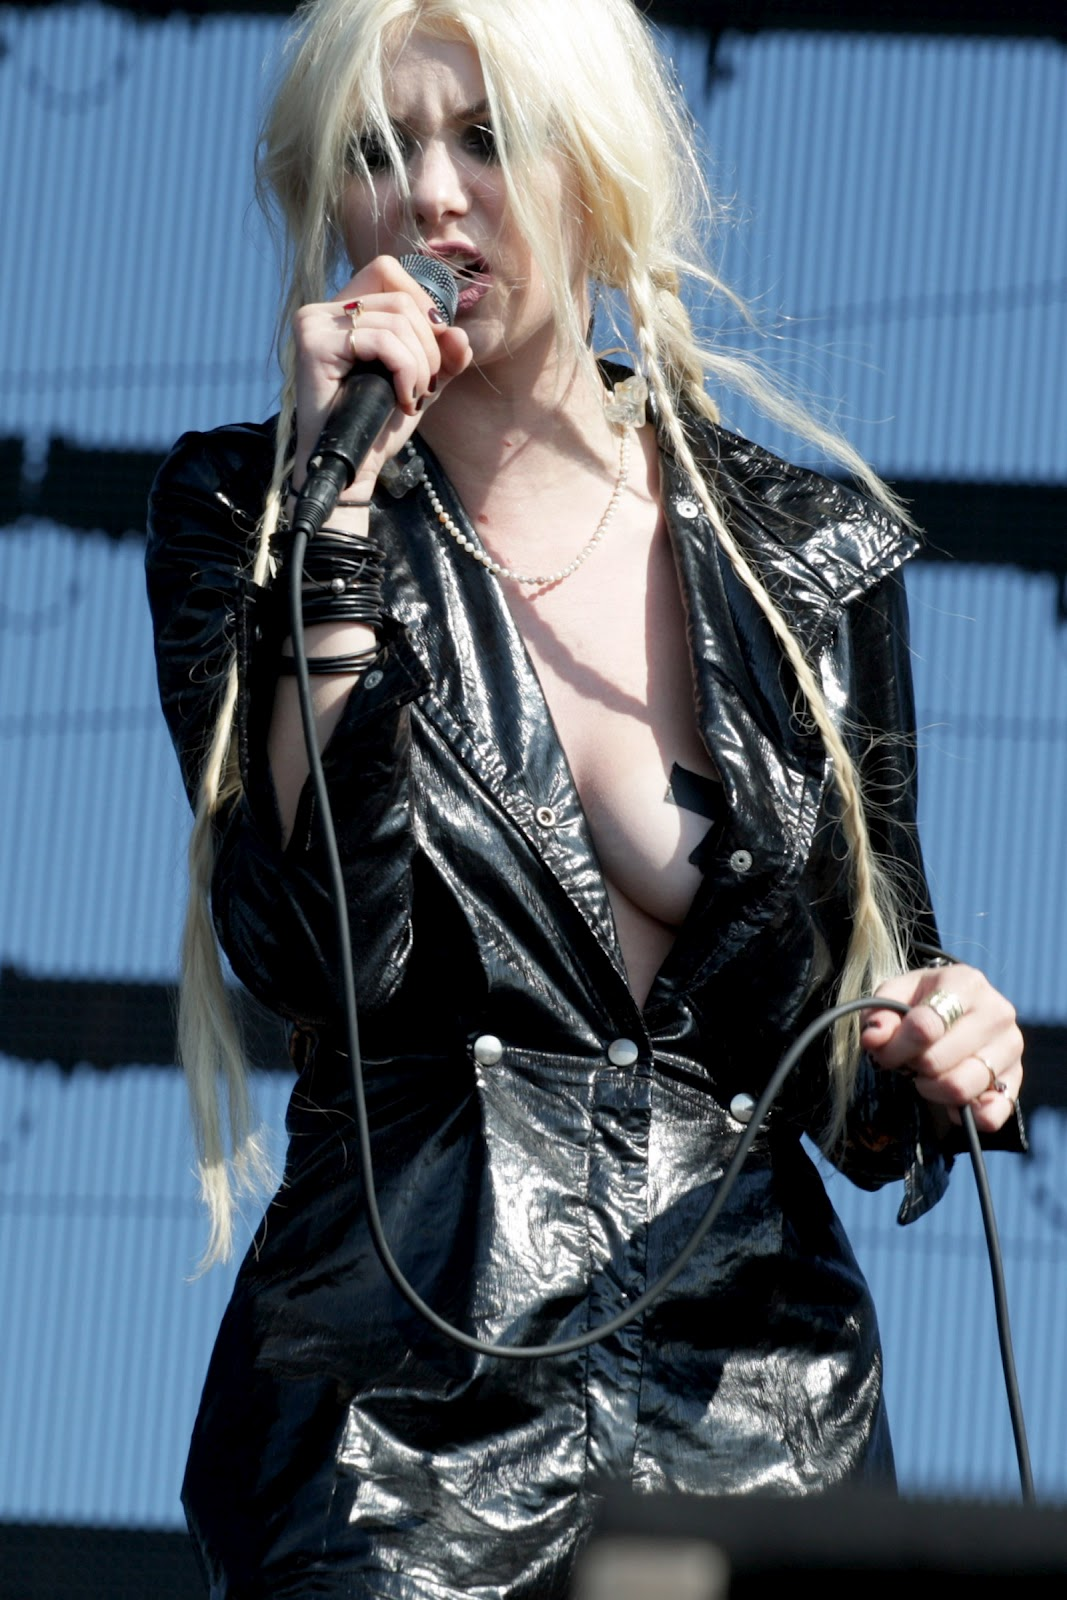 Taylor momsen flashes her breasts